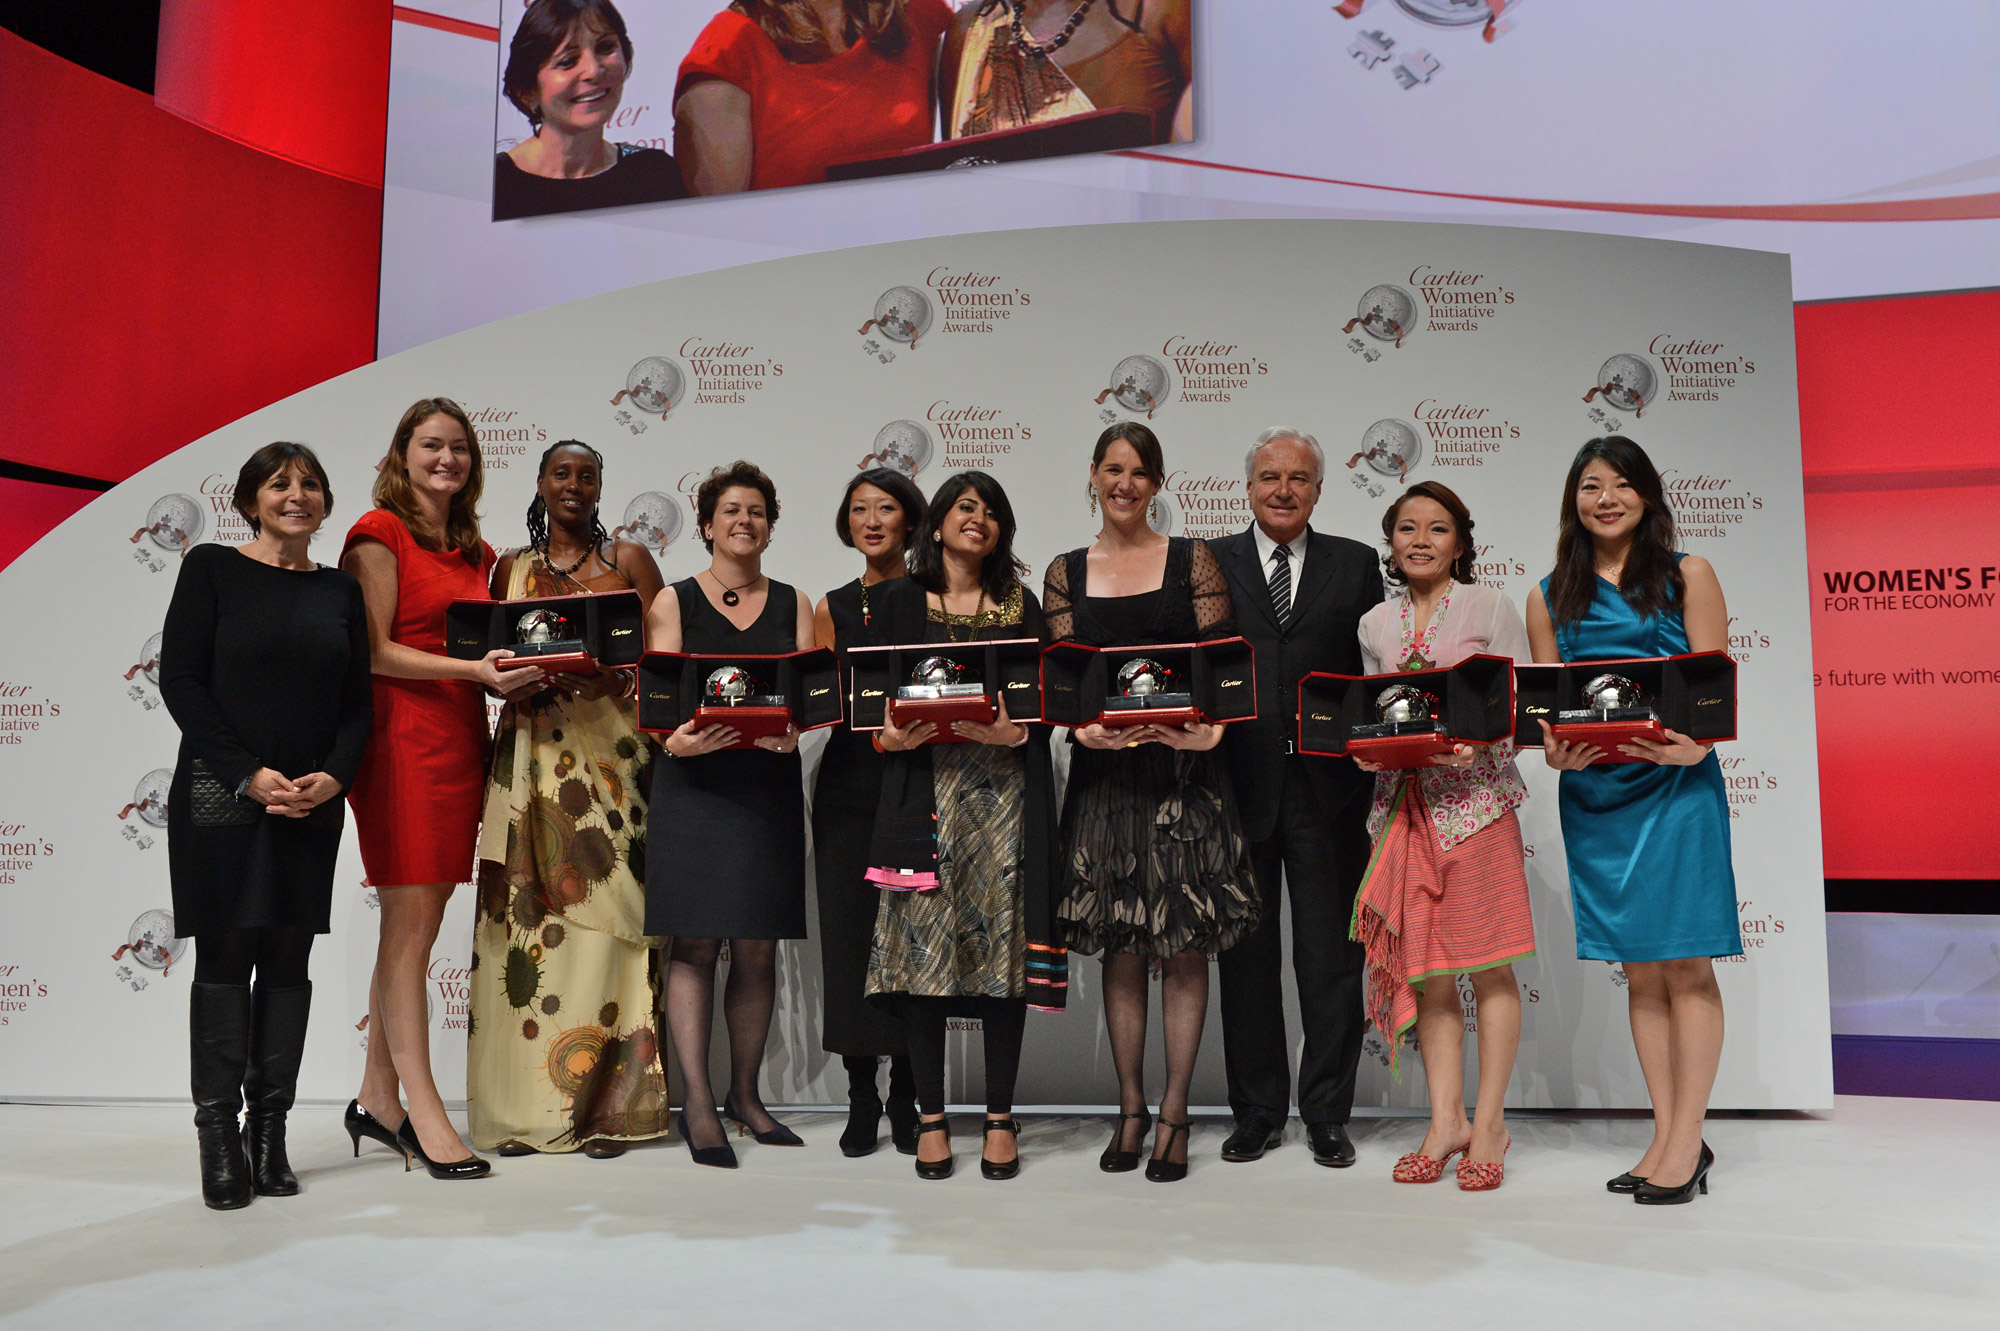 Cartier Women's Initiative Awards Laureates 2012